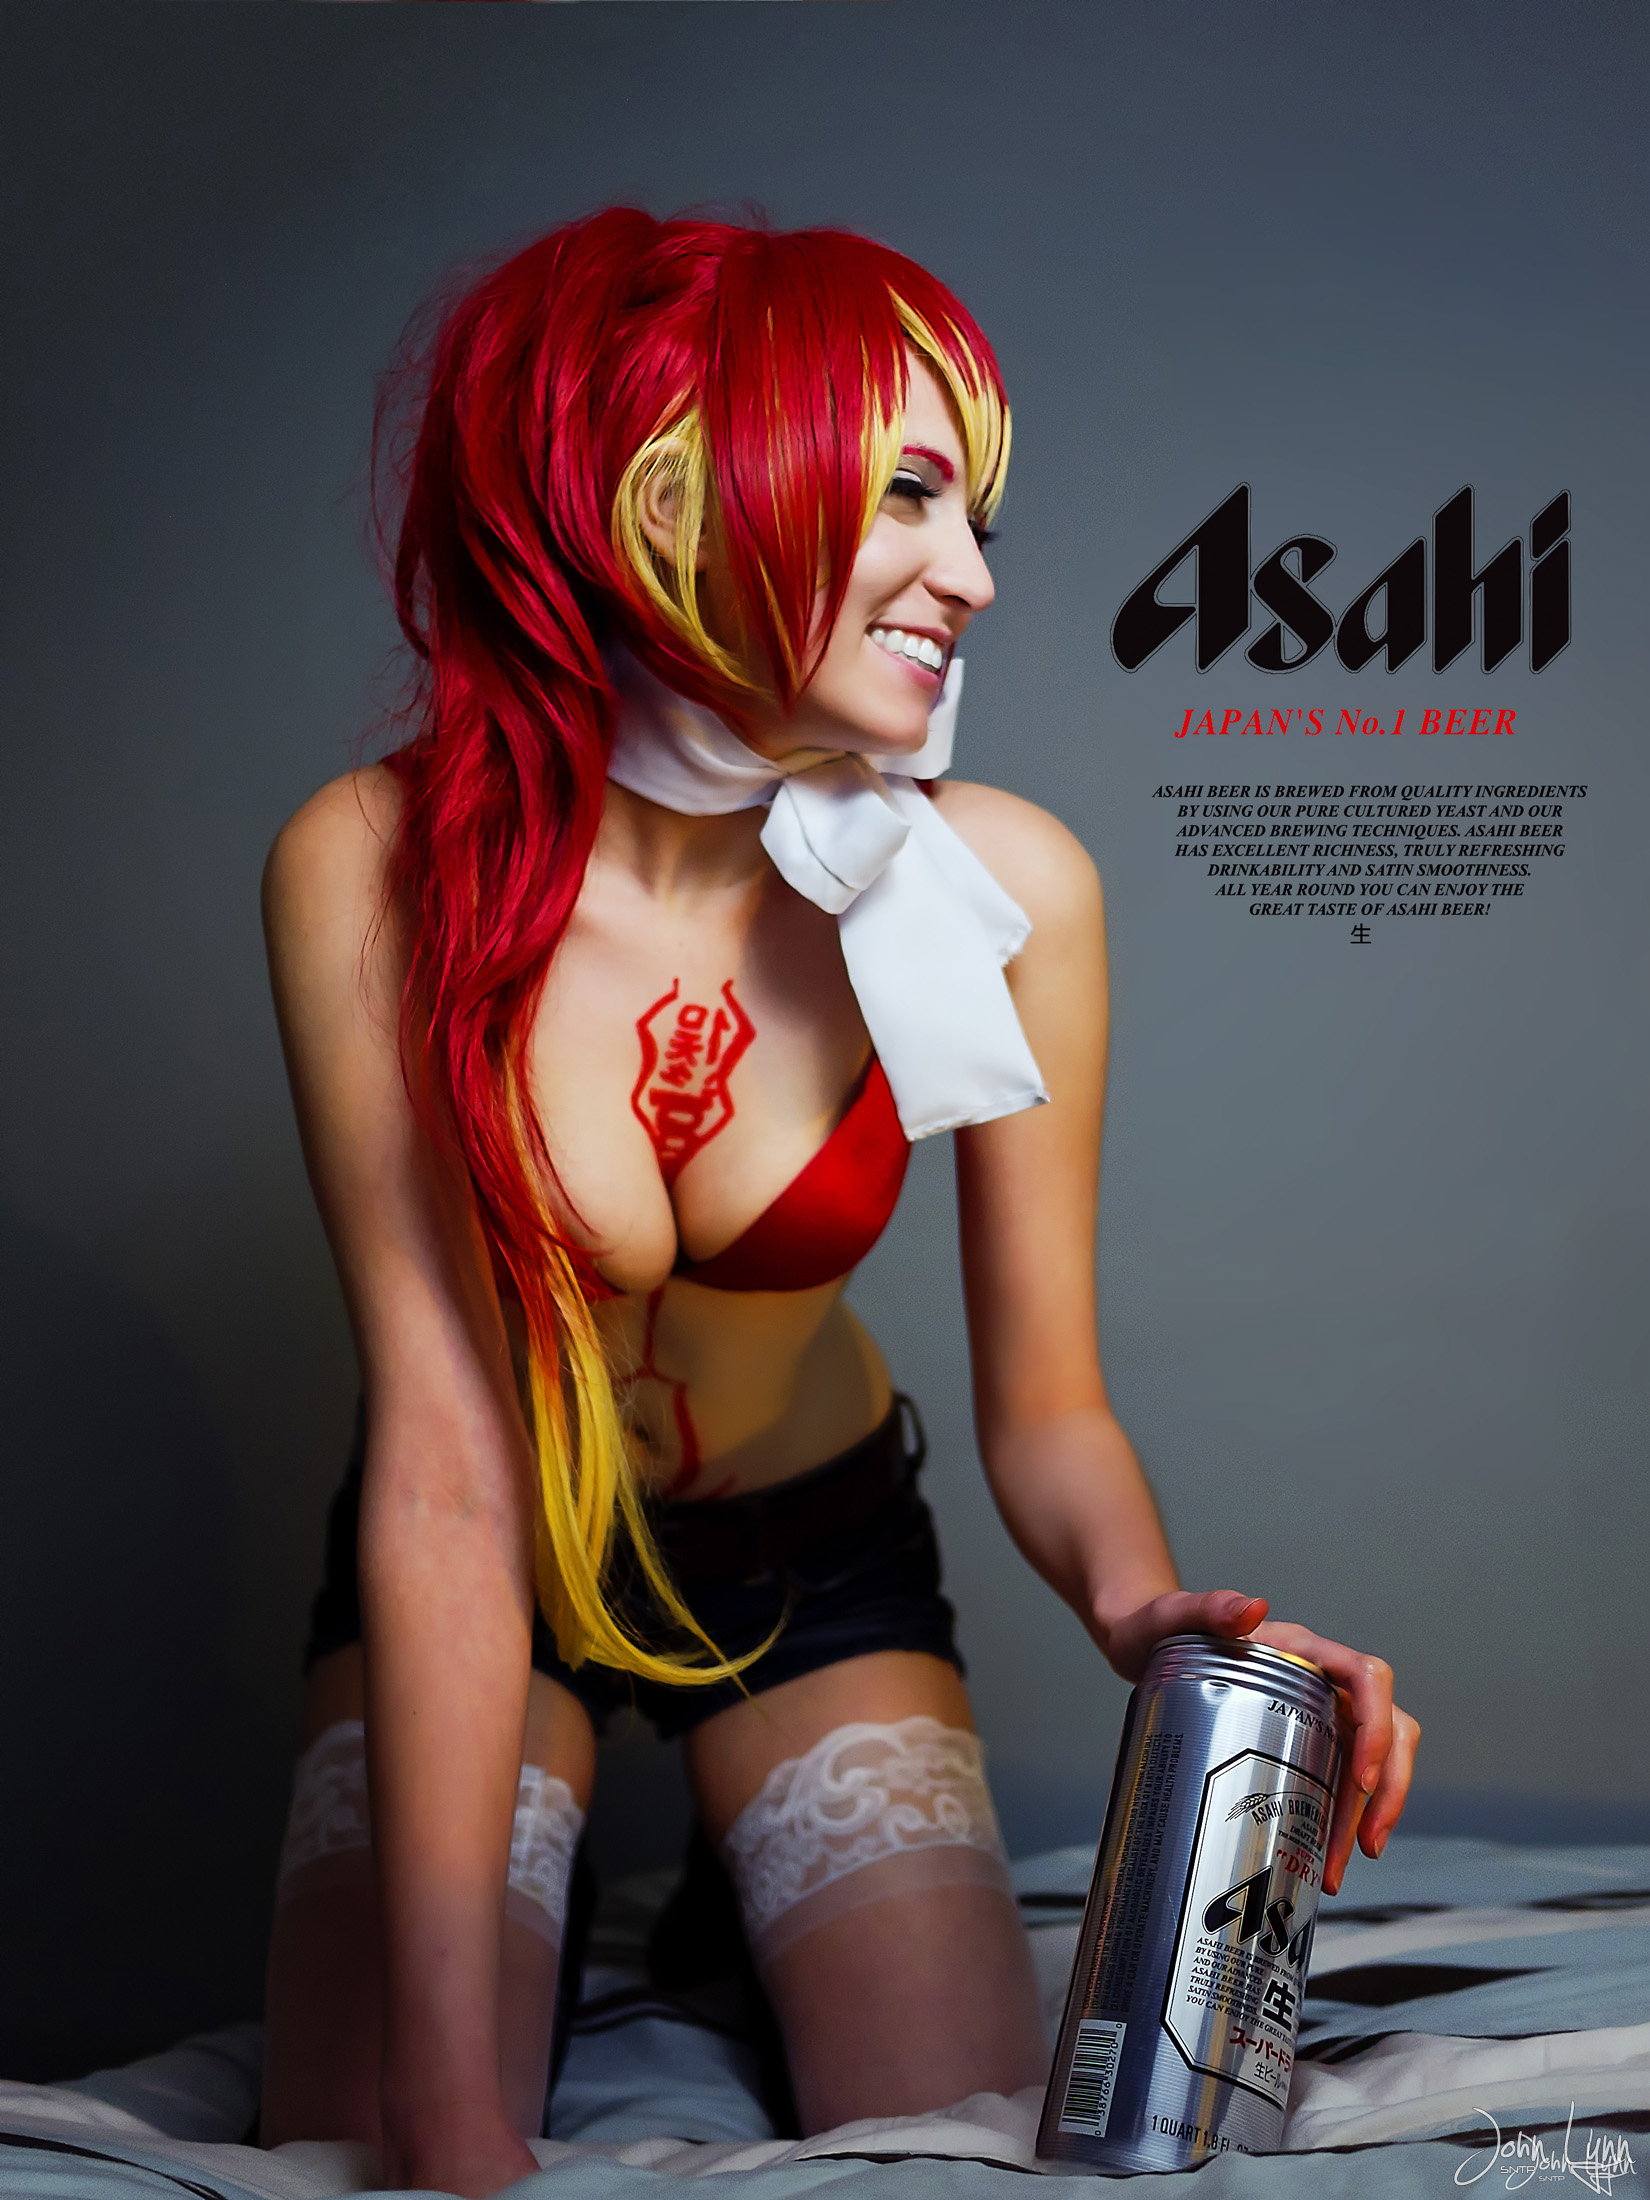 Shura from Ao No Exorcist Shoot 13 Asahi Print Ad by SNTP